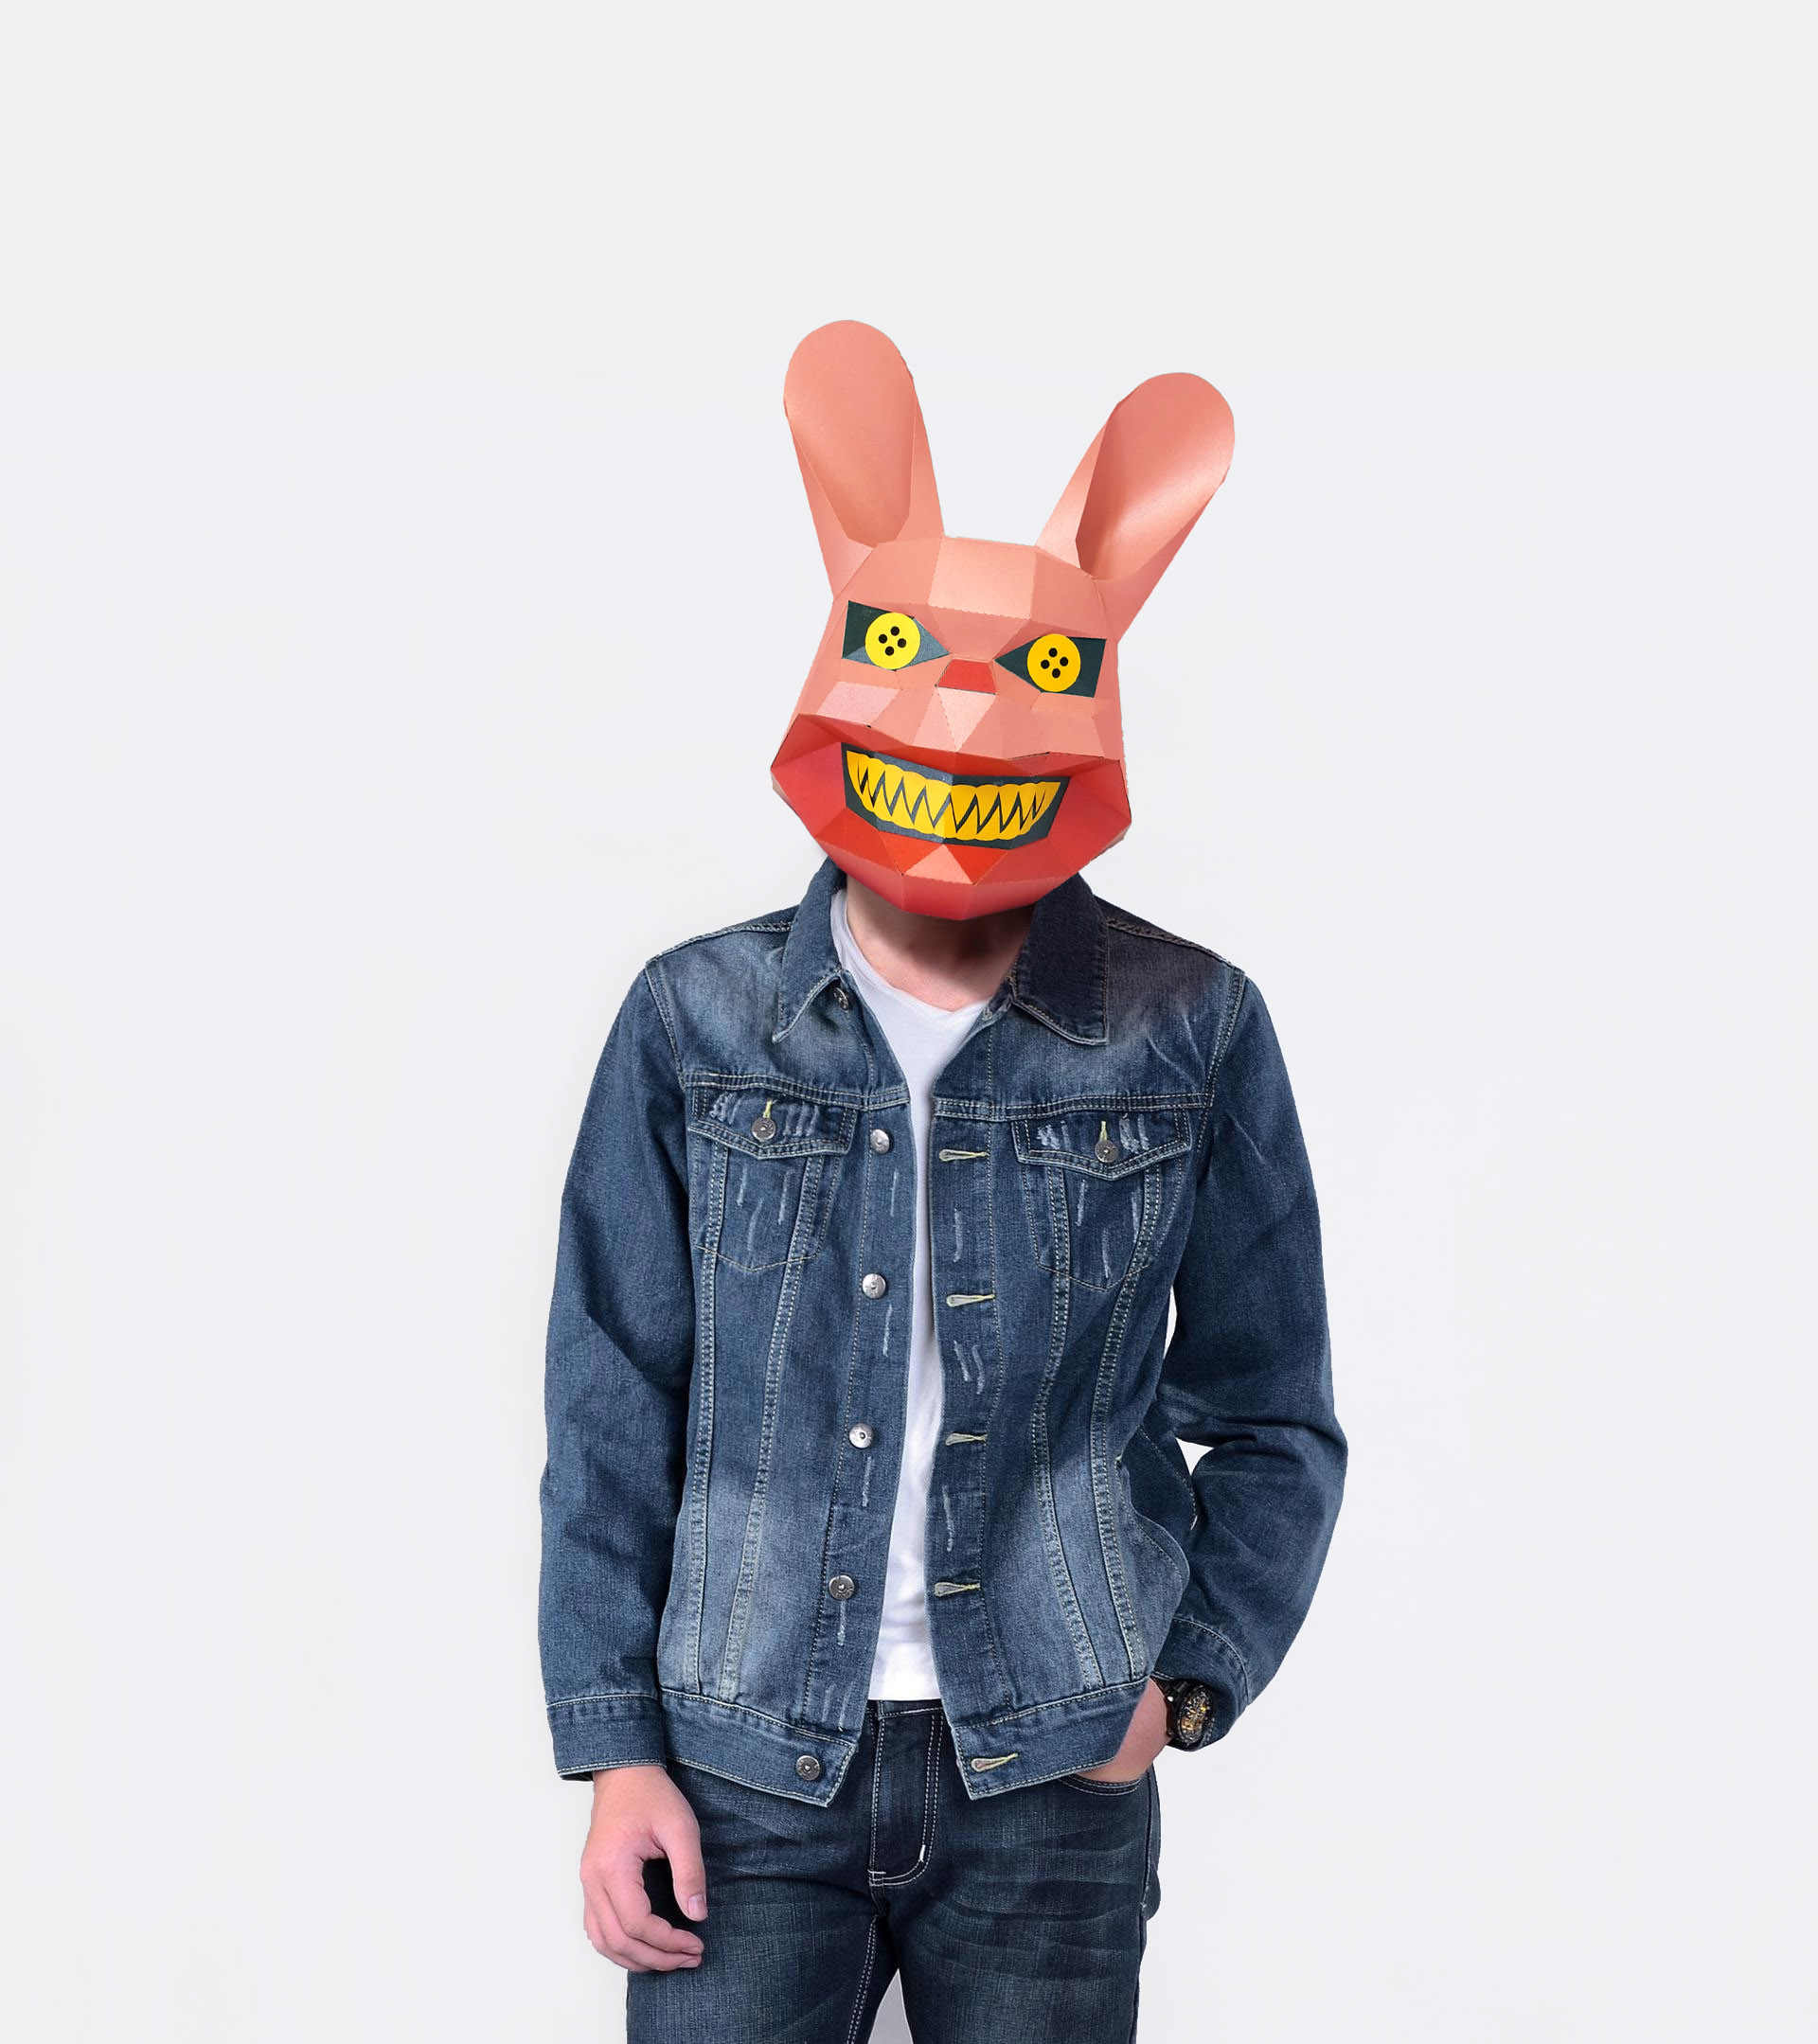 Paper Mask 3d Scary Rabbit Costume Cosplay DIY Paper Craft Model Mask Christmas Halloween Prom Party Gift